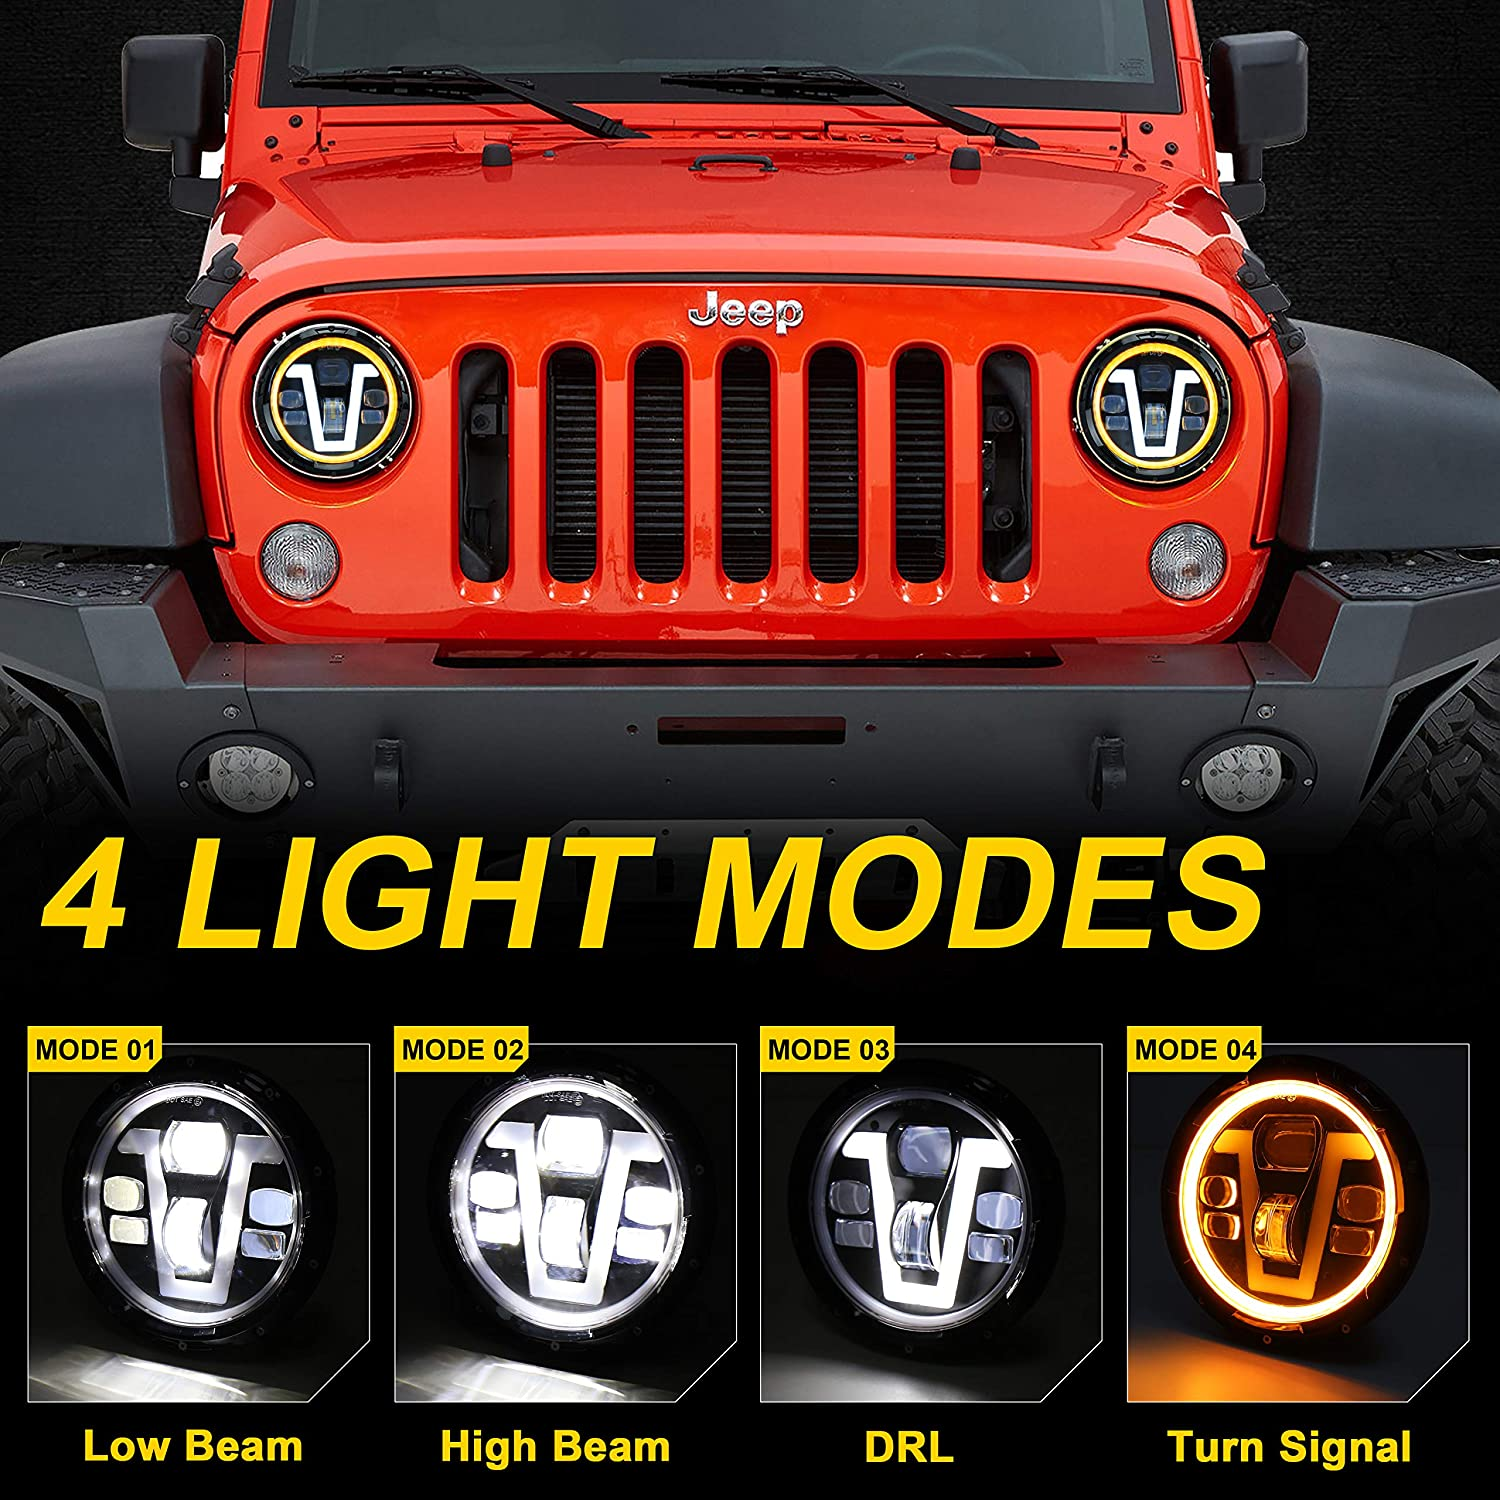 7 inch LED Headlights V Type DRL Turn Signal 50W for Jeep Wrangler Jeep Turn Signal Wiring Diagram on ford 8n wiring diagram, 1960 willys l6-226 12 volt wiring diagram, 1979 jeep wiring diagram, jeep cj5 wiring-diagram, 1986 jeep wiring diagram, simple chopper wiring diagram, 86 cj7 distributor wiring diagram, 2014 jeep wrangler wiring diagram, 1984 jeep cj wiring diagram, 2009 dodge 4500 pto wiring diagram,